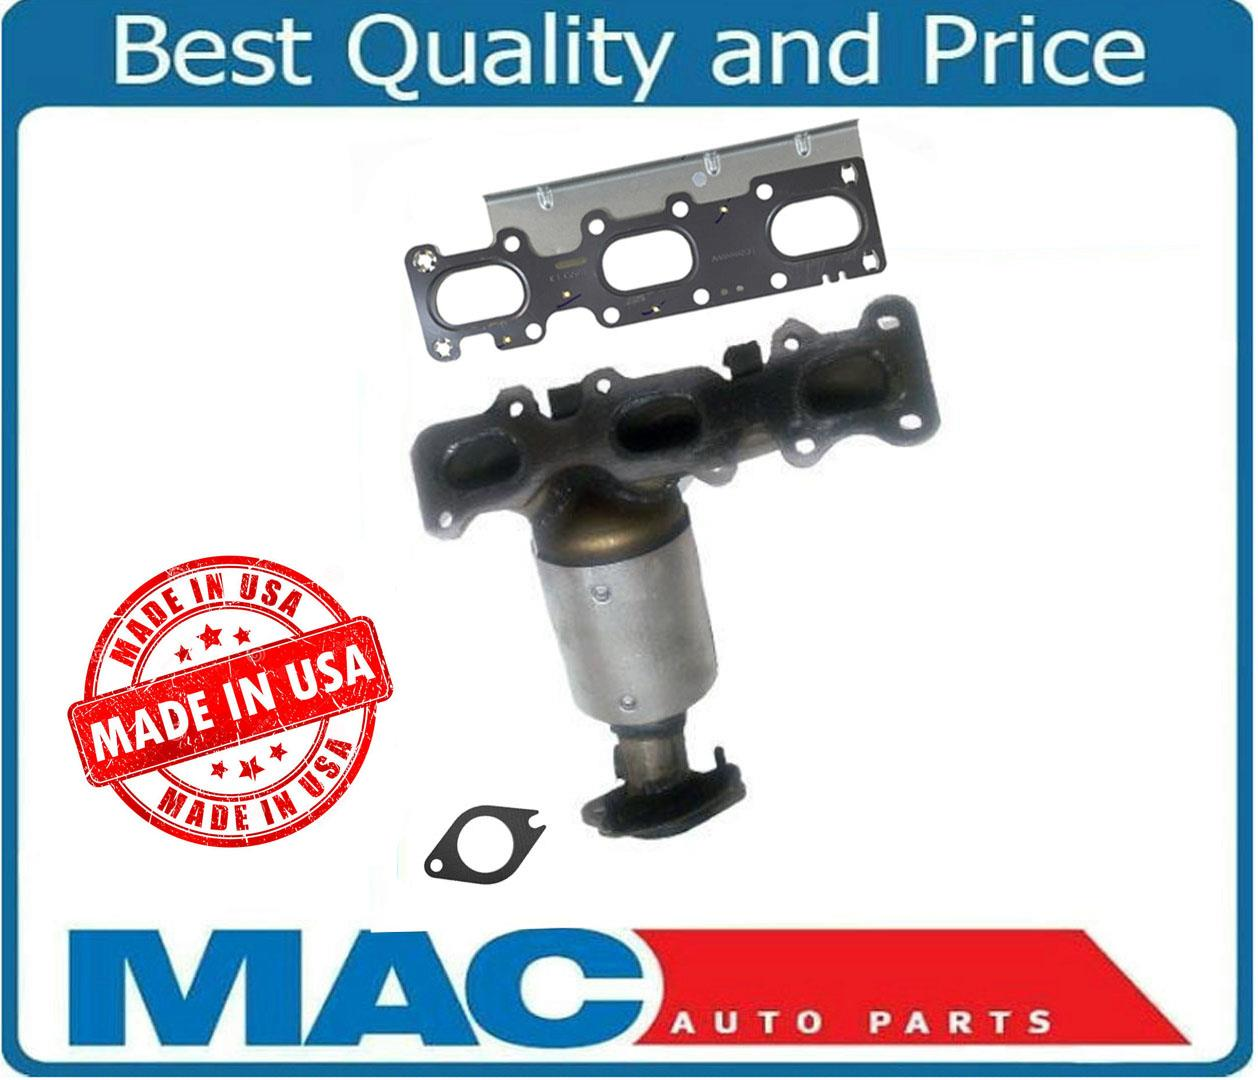 BOTH RADIATOR /& FIREWALL SIDE DIRECT FIT CONVERTERS FOR 2009 FORD EDGE 3.5L 3.7L